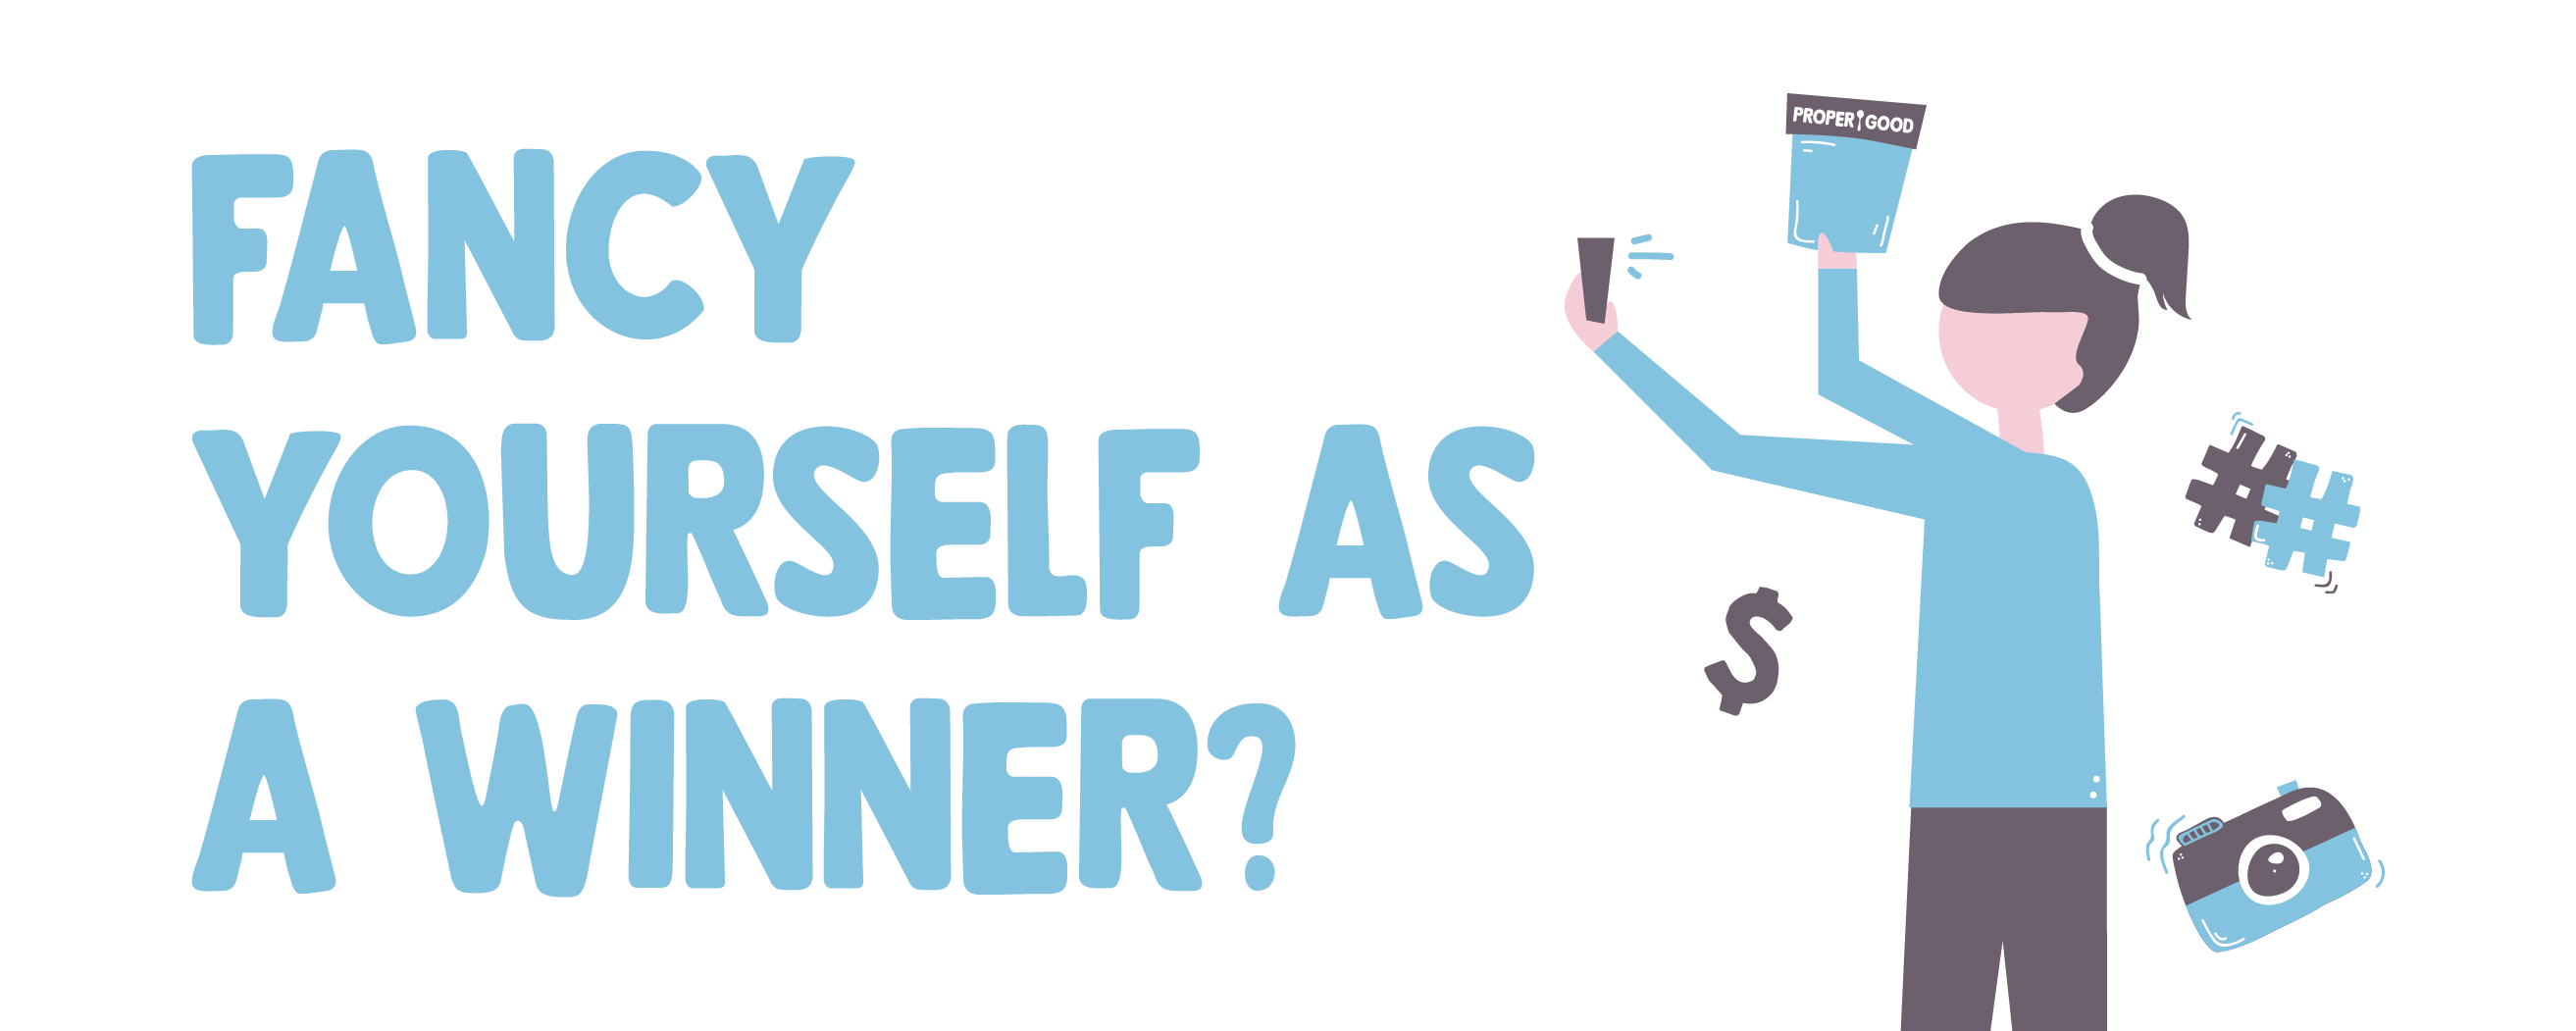 Fancy Yourself as a Proper Good winner?